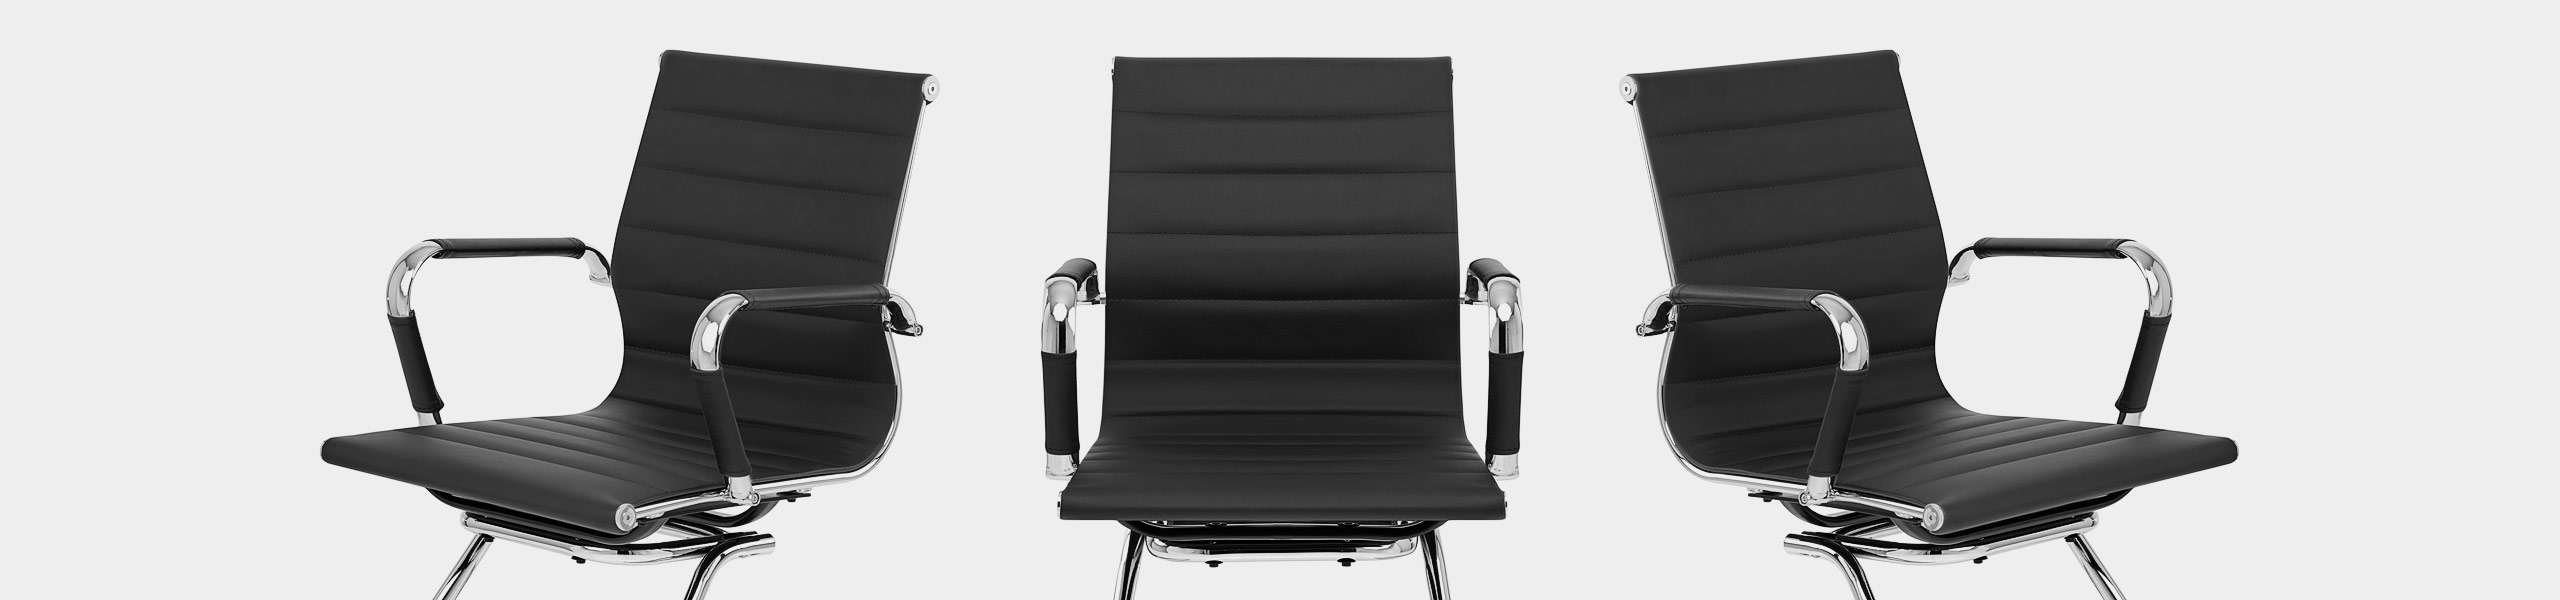 Task Office Chair Black Video Banner